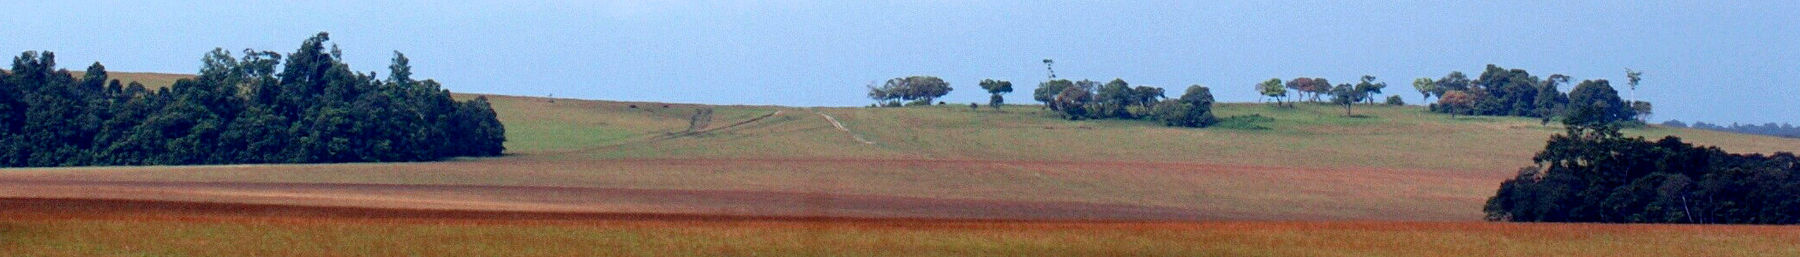 Gabon banner Grassland with clumps of trees.jpg